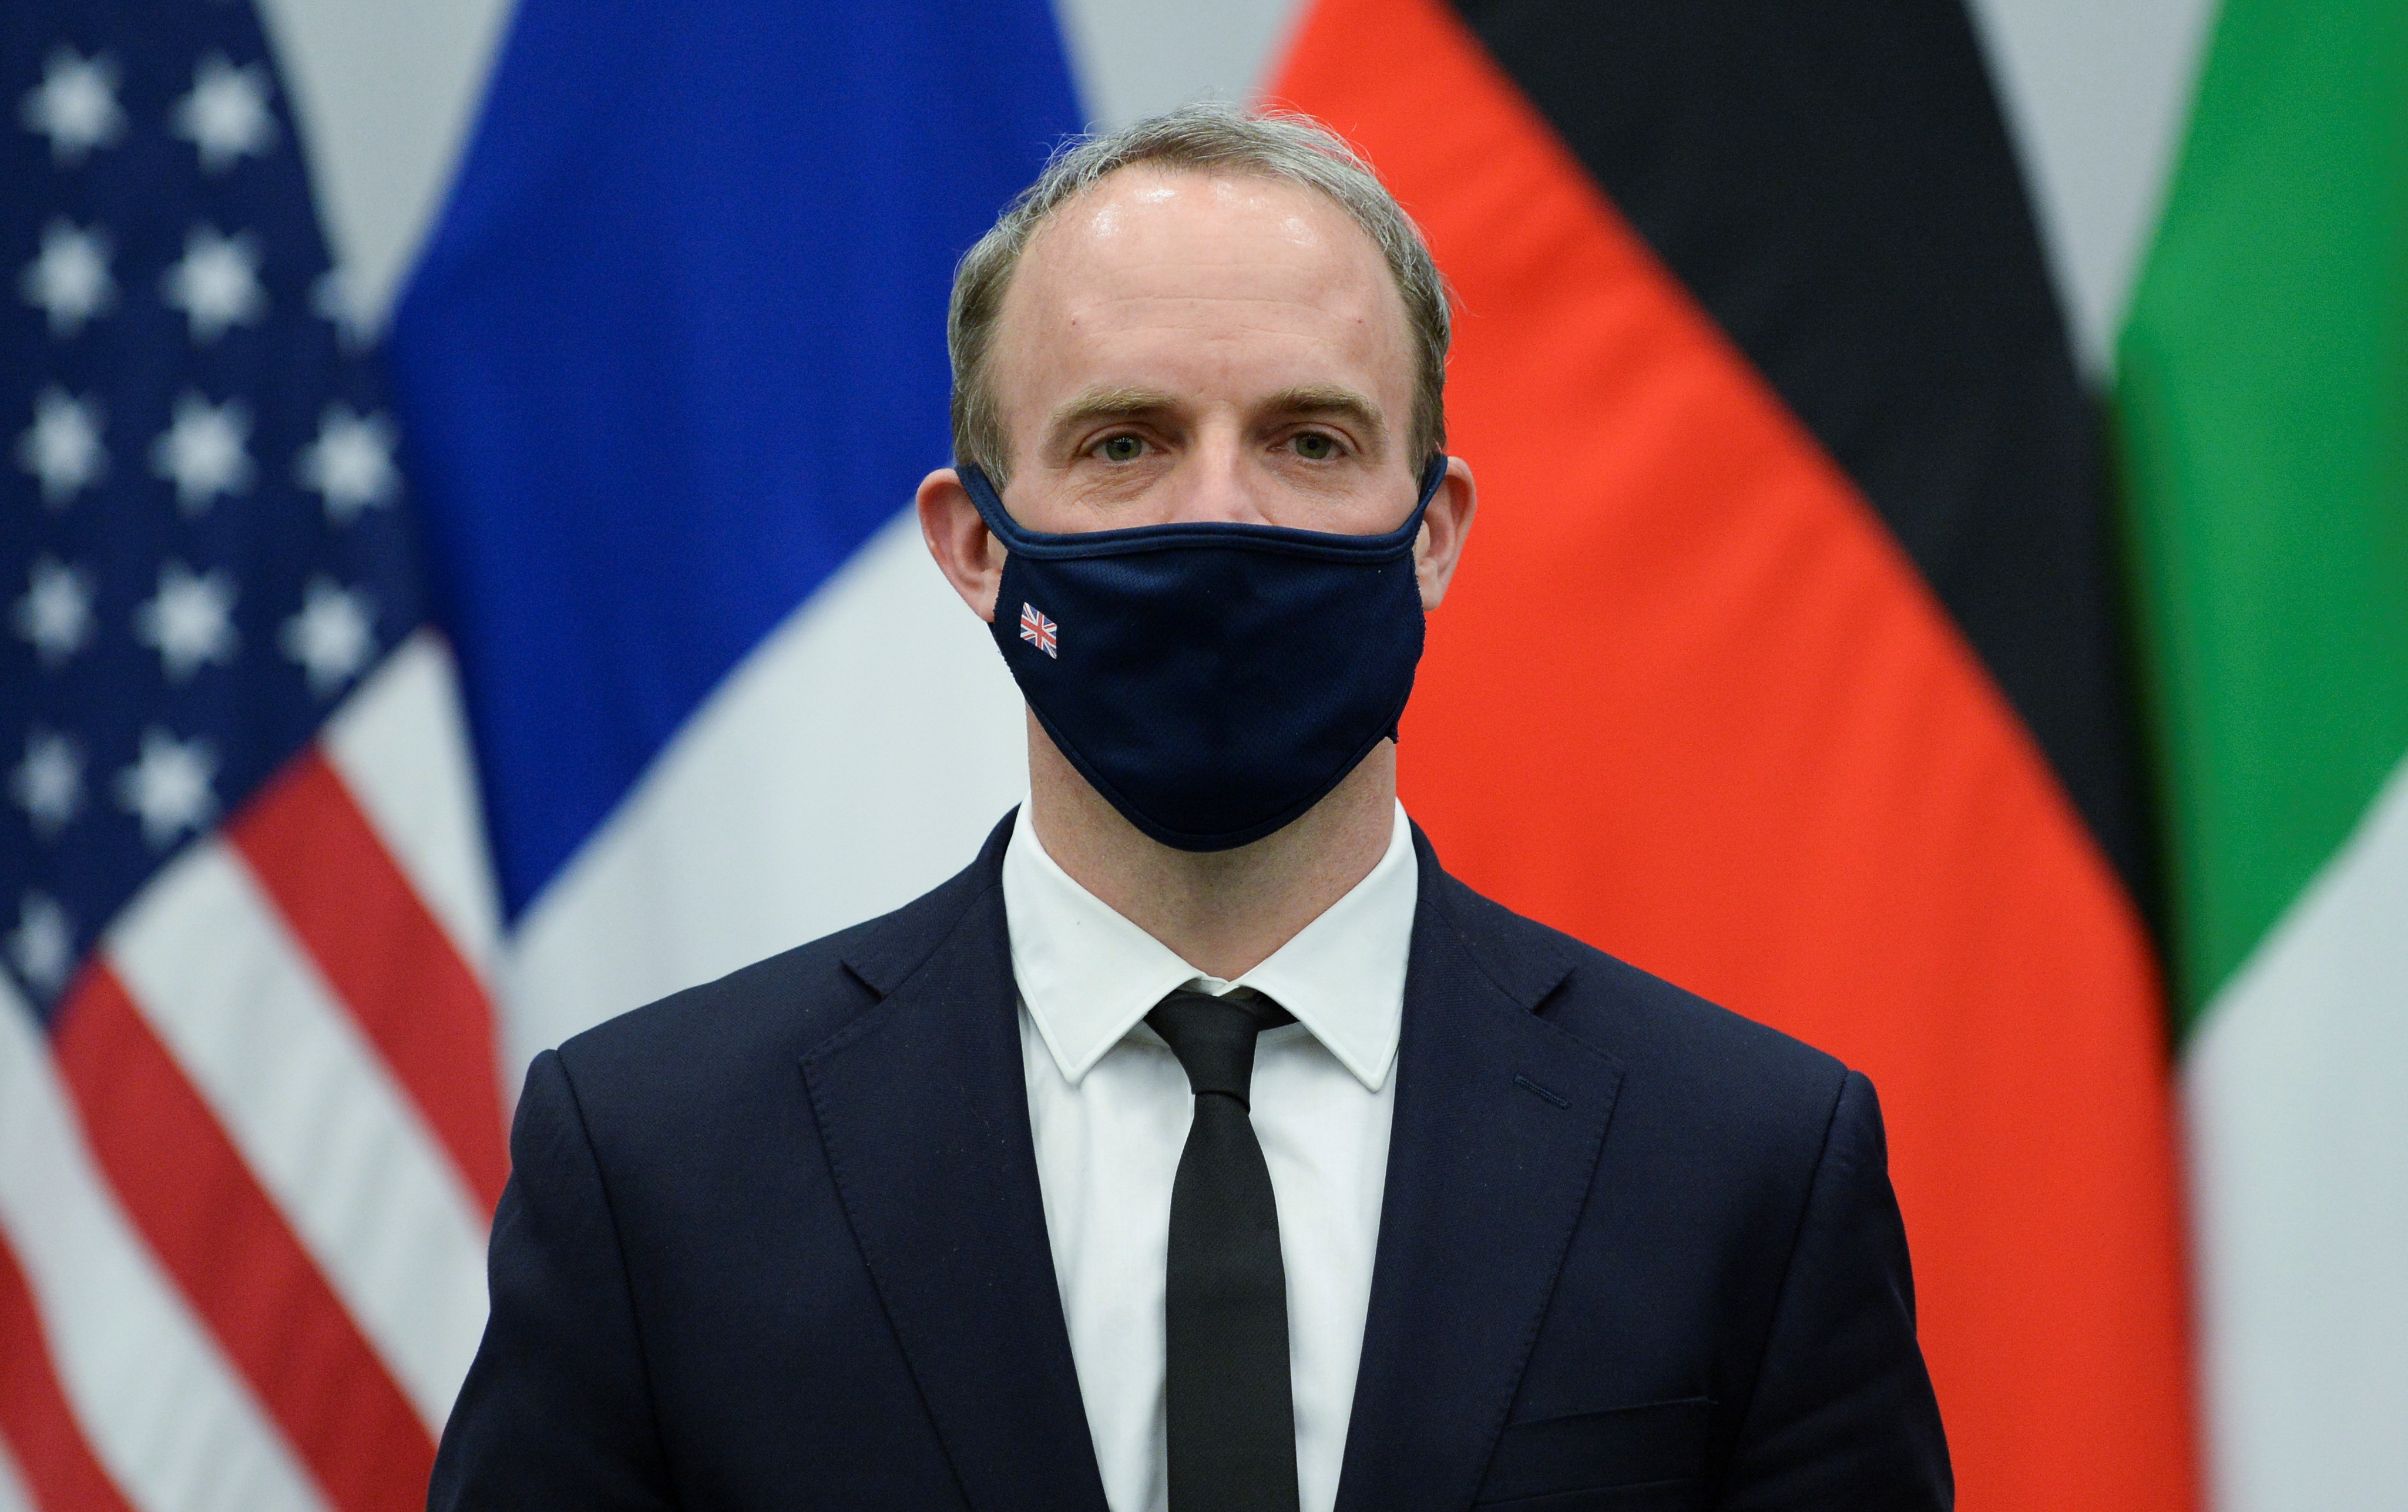 Britain's Foreign Secretary Dominic Raab wears a protective mask during a meeting with U.S. Secretary of State Antony Blinken in Brussels, Belgium April 14, 2021. REUTERS/Johanna Geron/Pool